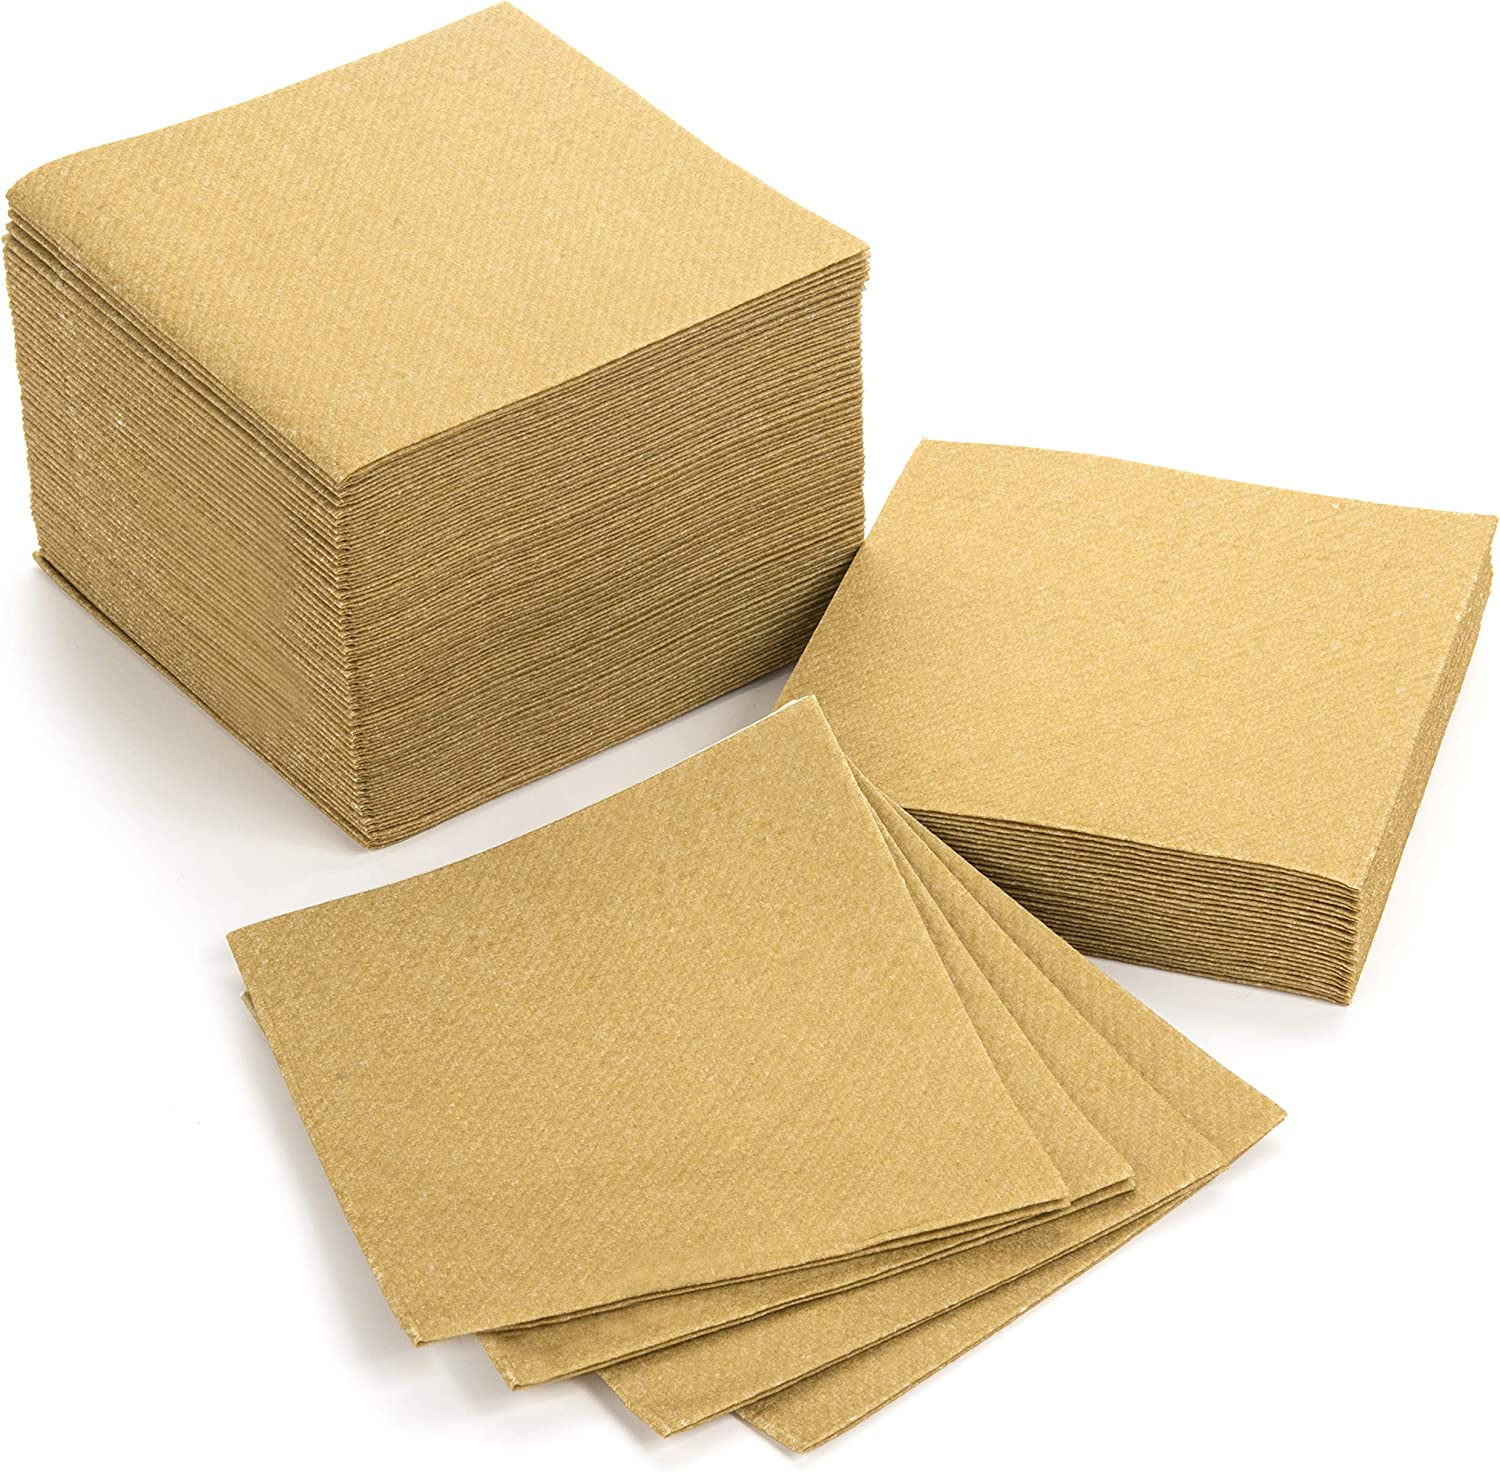 """American Homestead Cocktail Napkins - Small 4"""" x 4"""" Linen-Like Disposable Beverage/Bar Napkins - Bulk Square Napkins Eco-Friendly & Compostable - Everyday Use, Party or Wedding (100 Count, Gold)"""